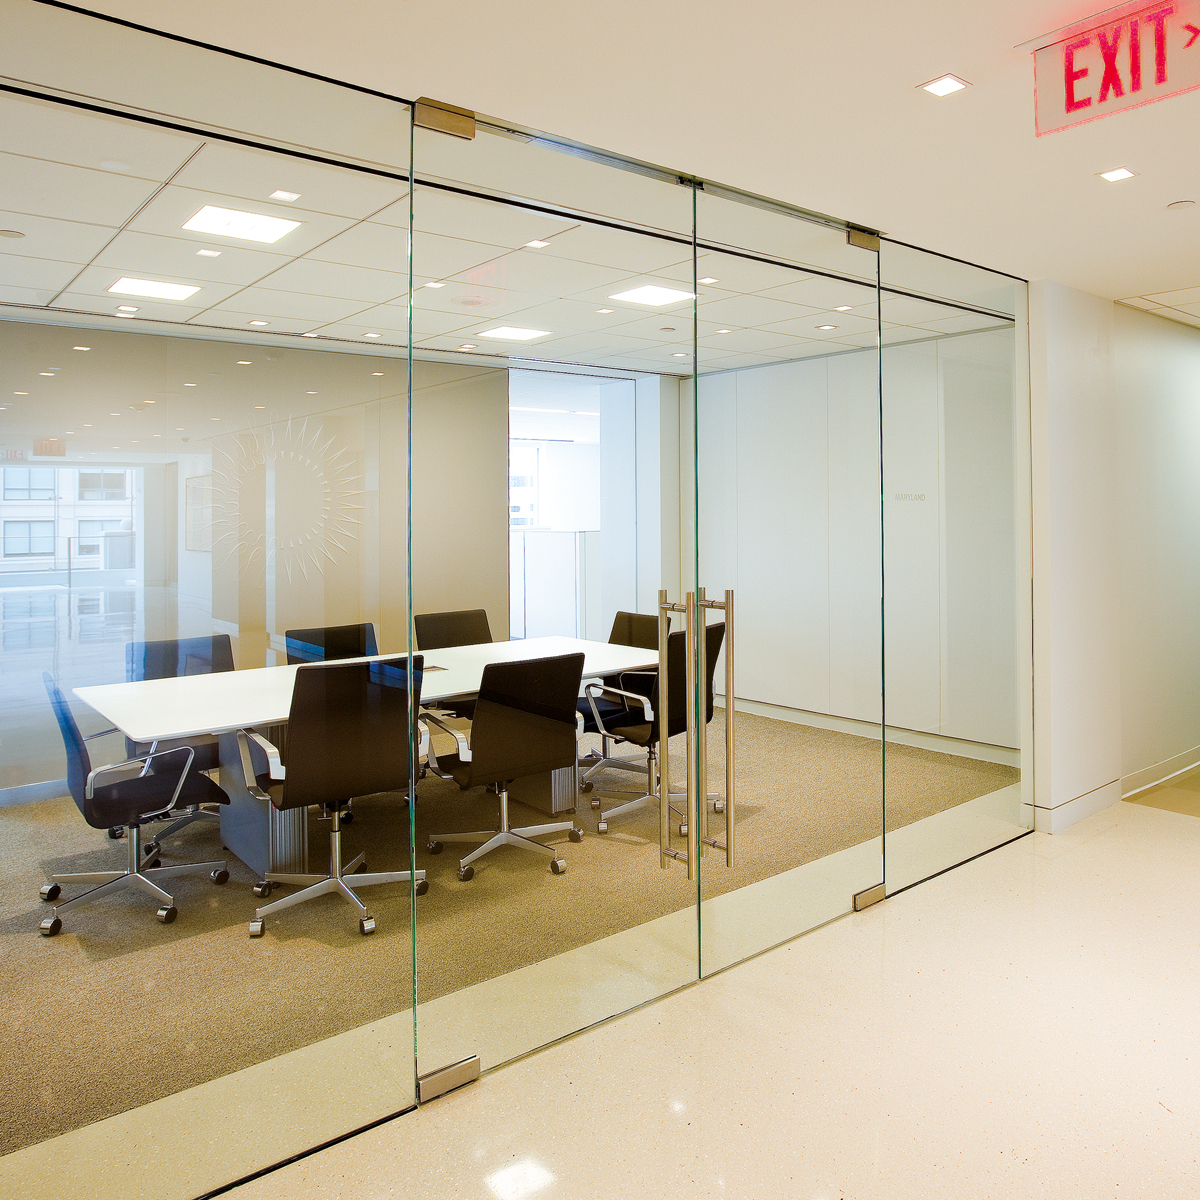 Dormakaba interior glass wall systems transparency and Interior glass partition systems